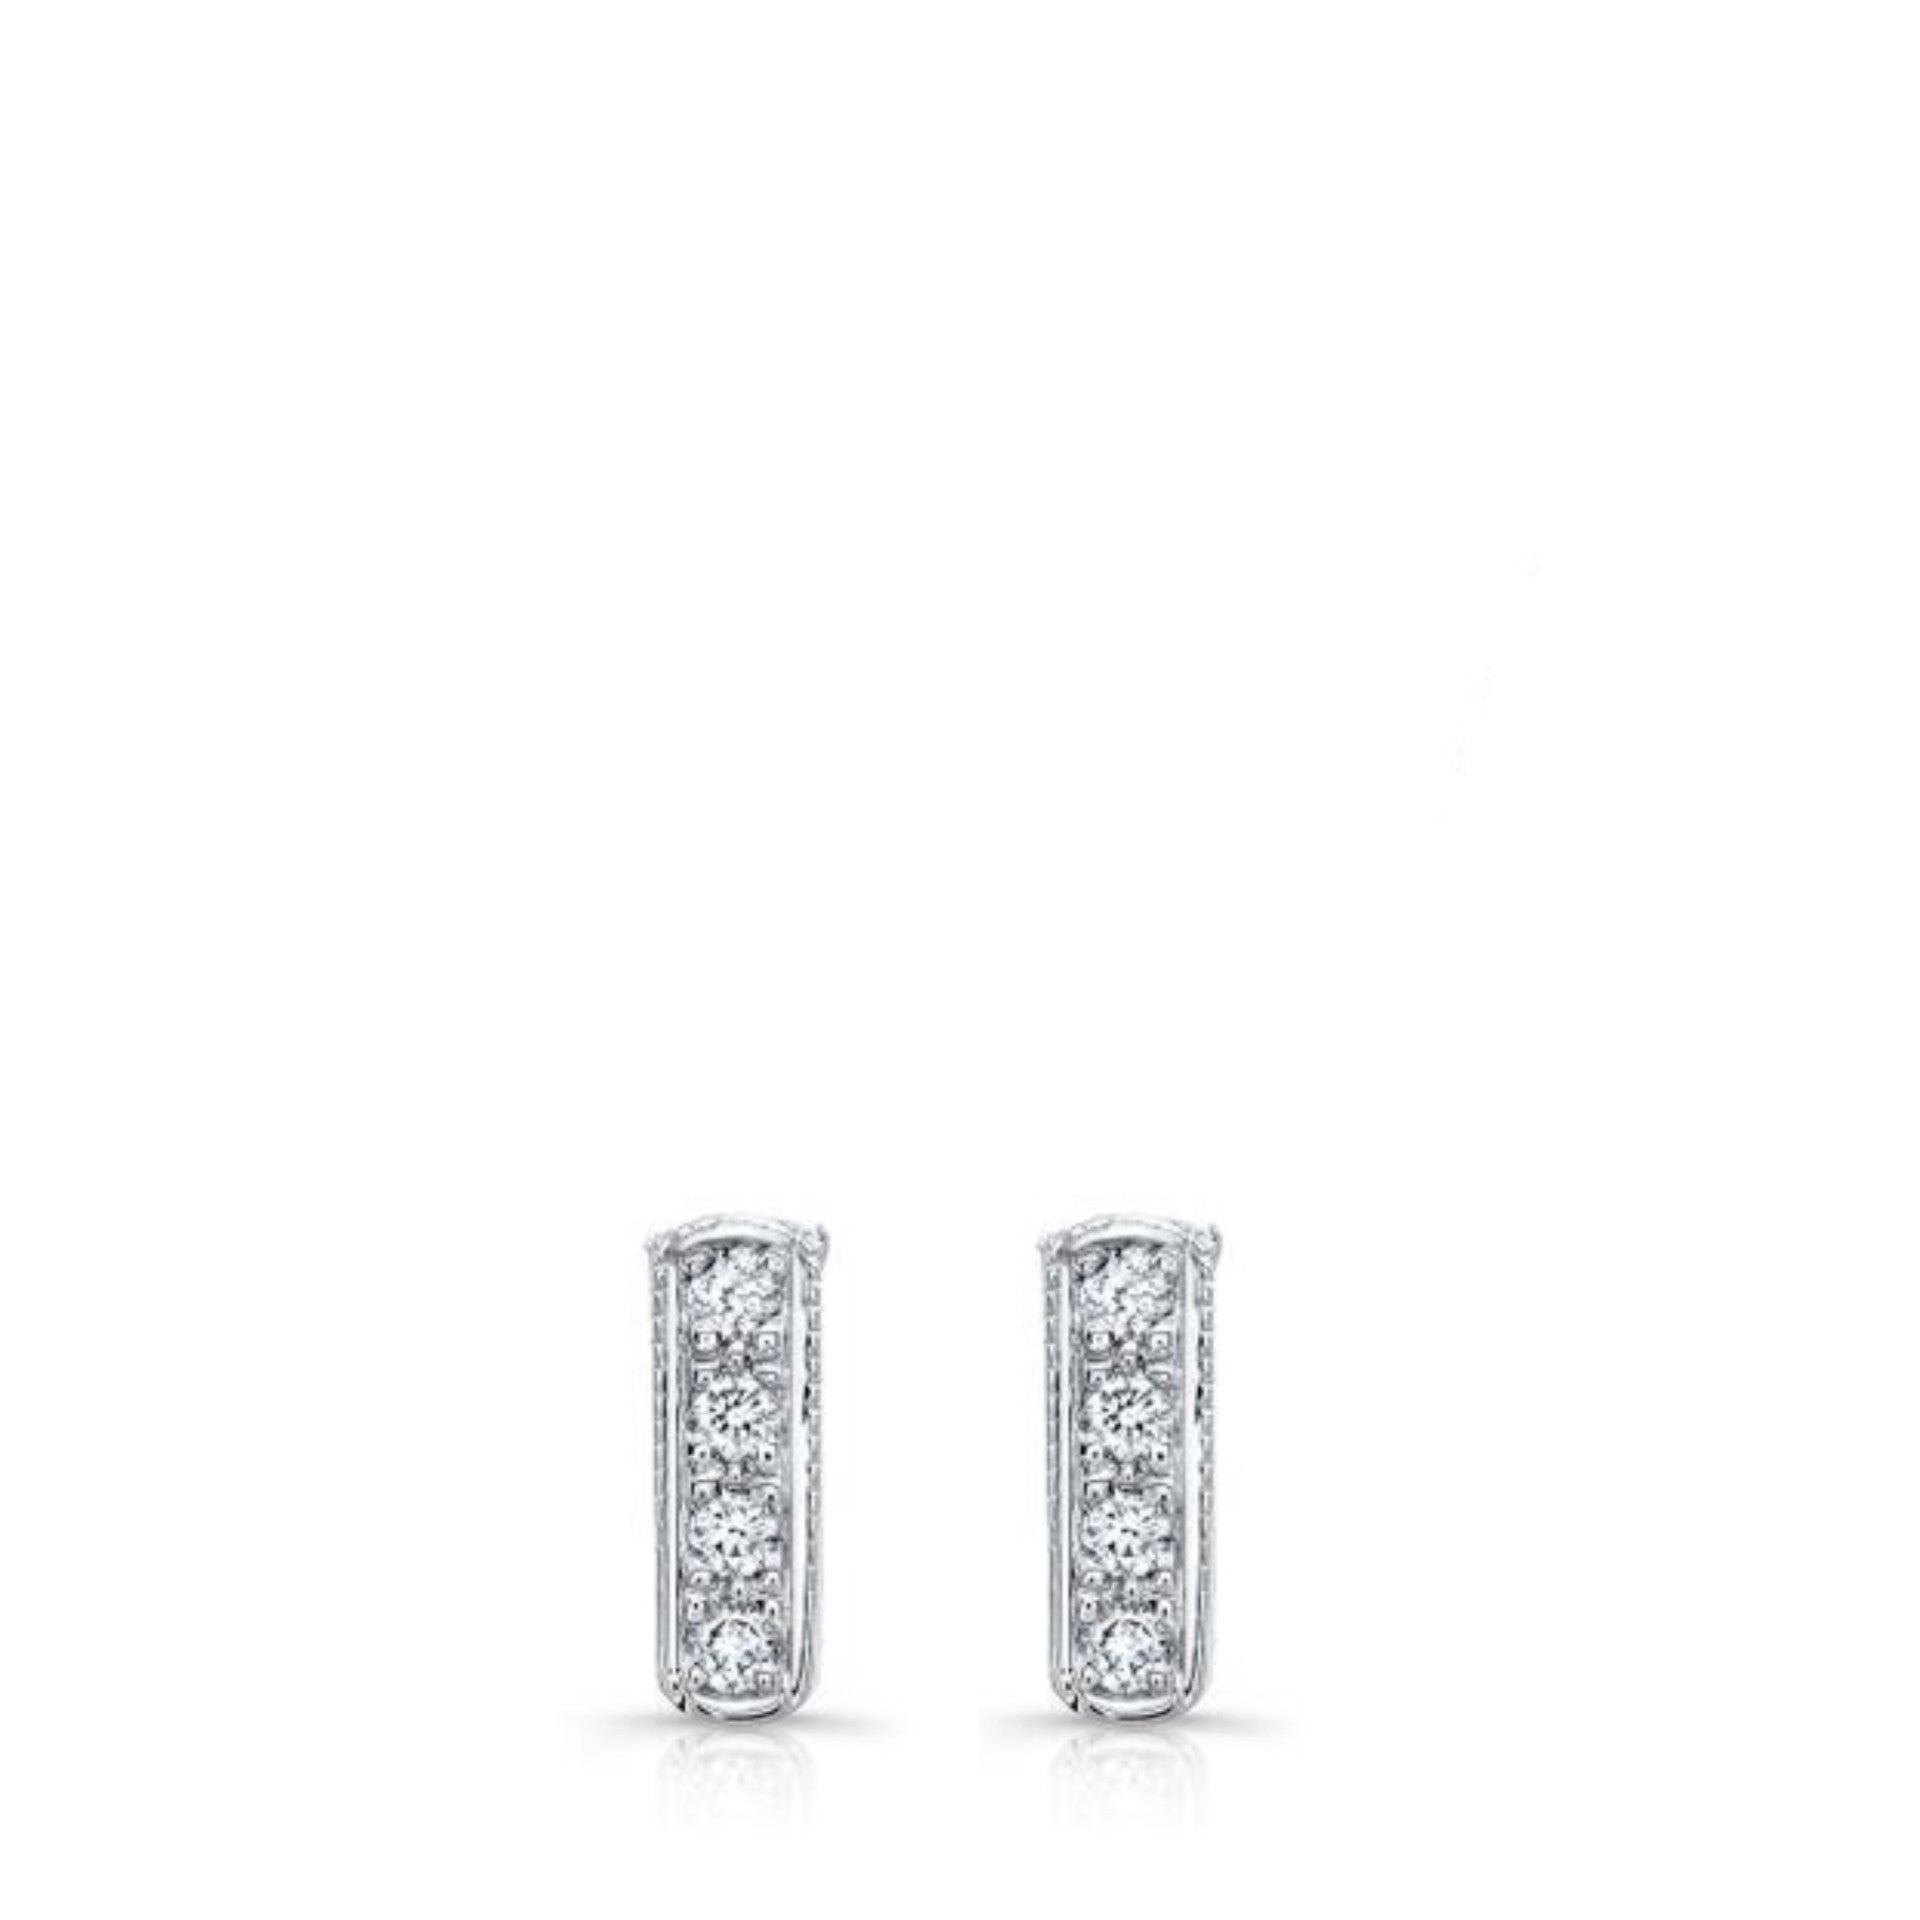 MINI BAR EARRINGS WHITE GOLD